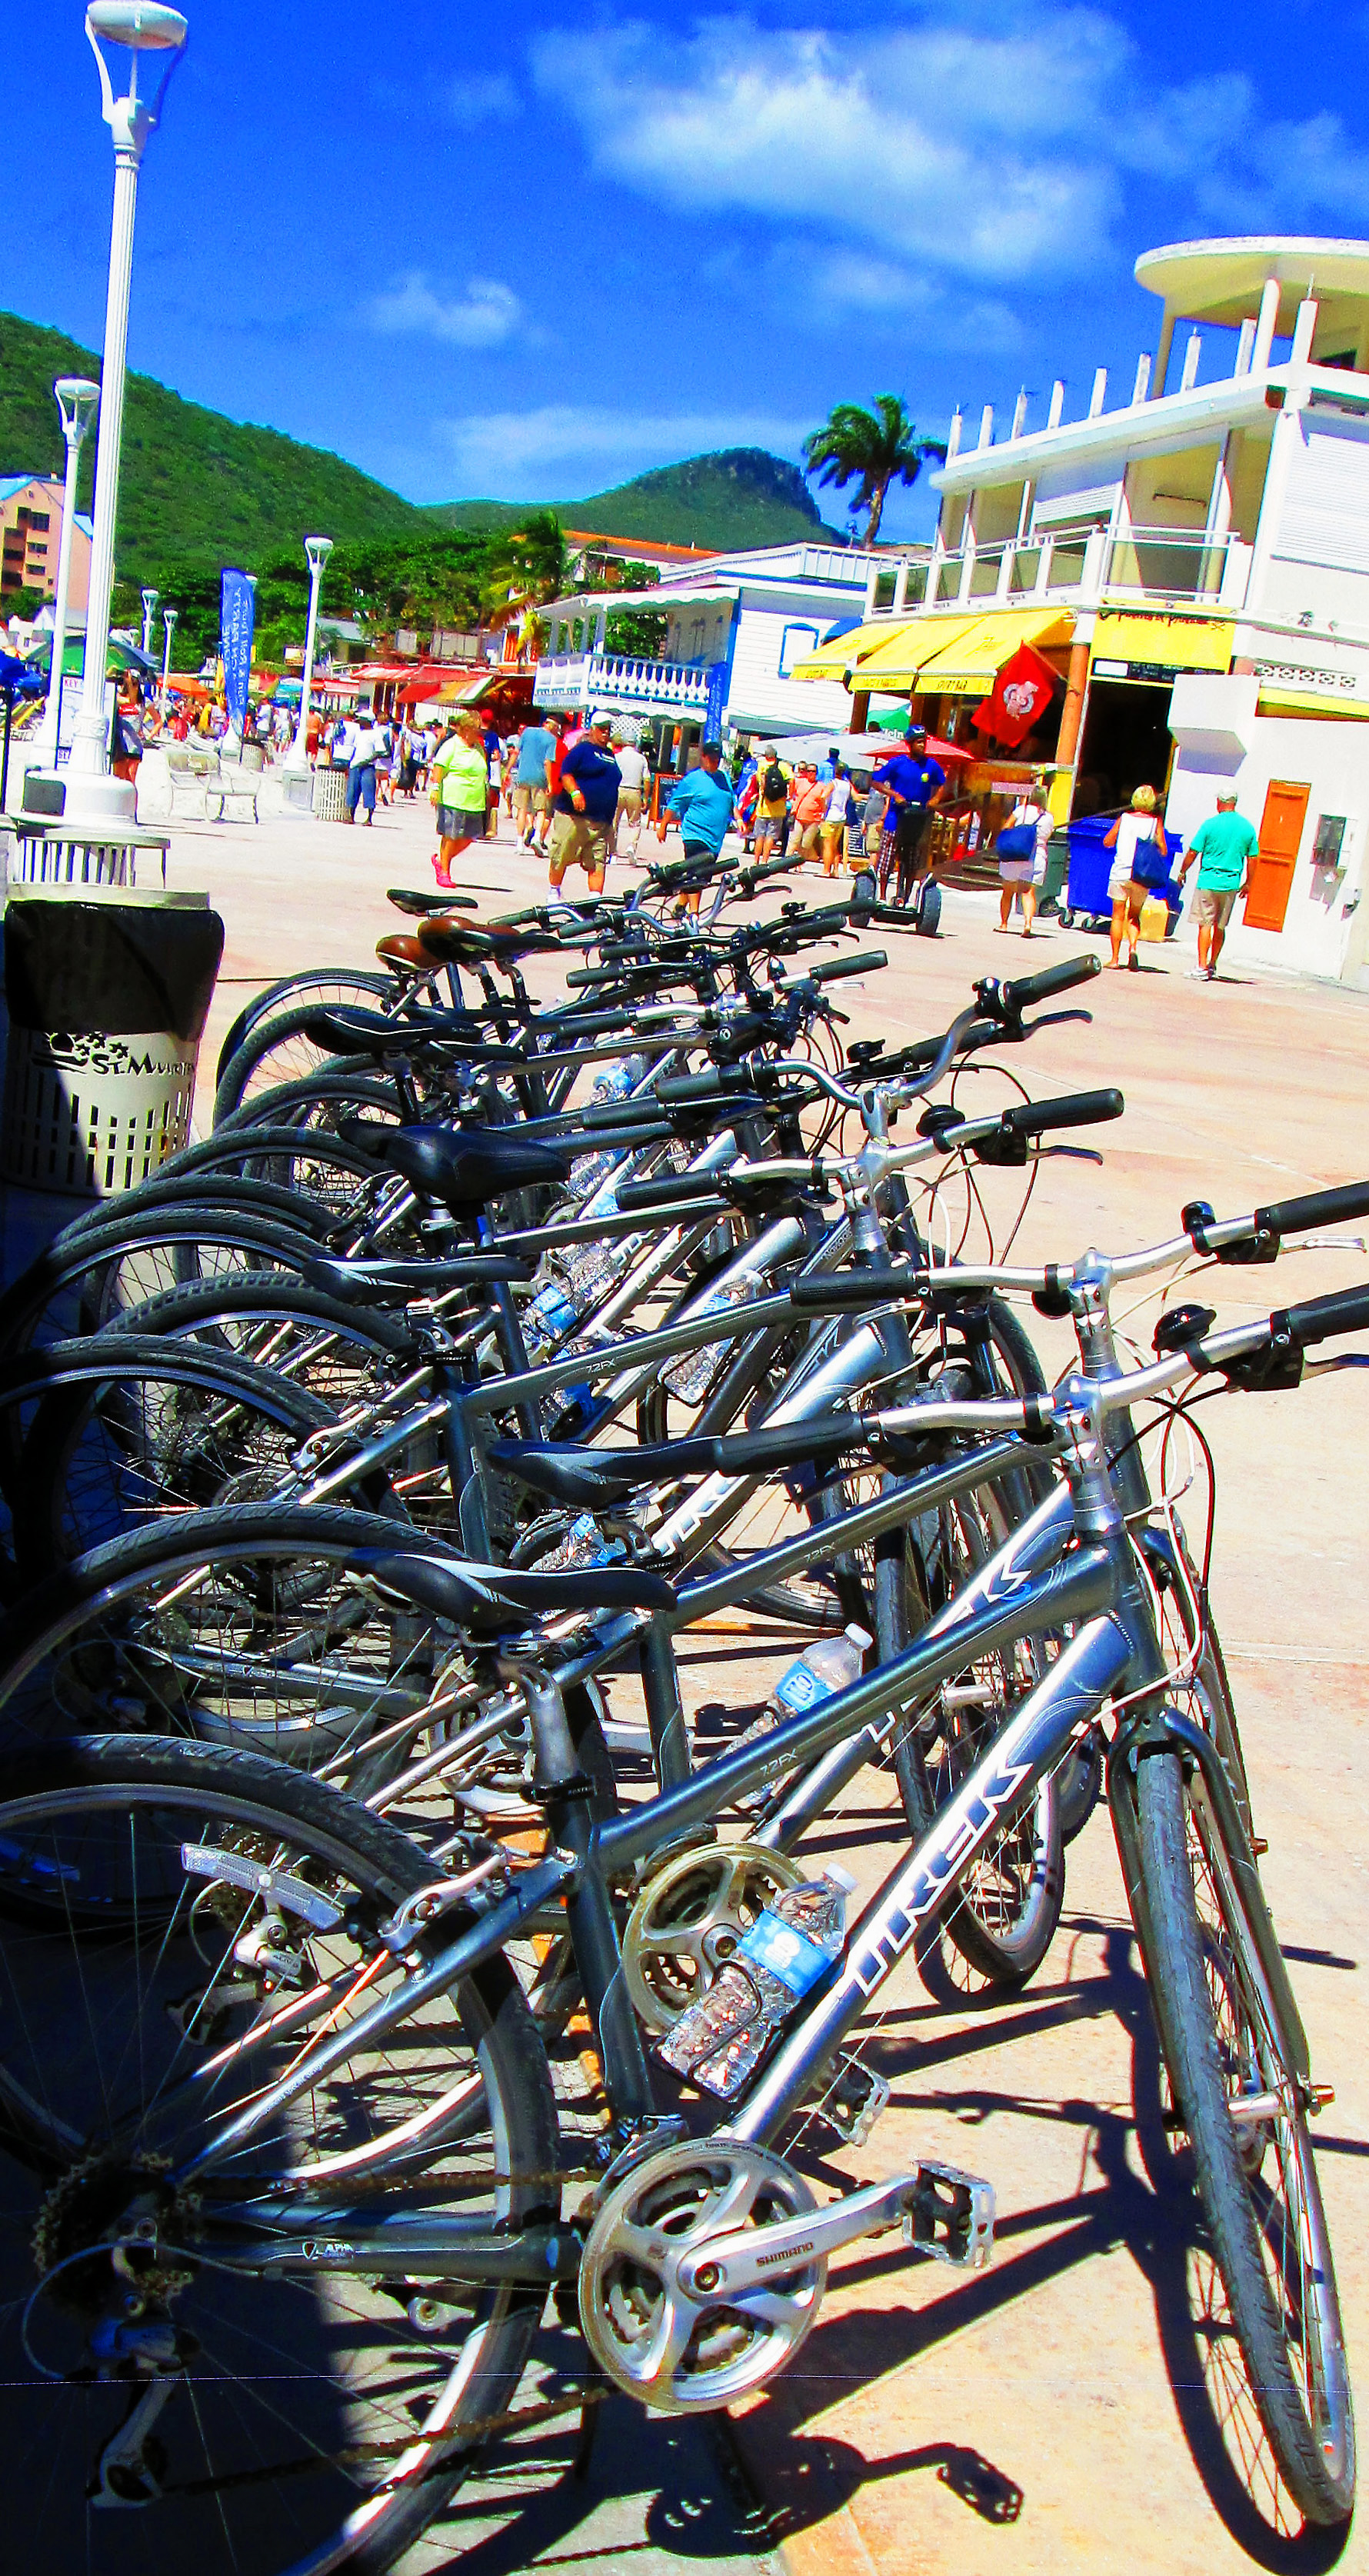 Trex Bicycles Lined Up For Rent On St Maarten Boardwalk